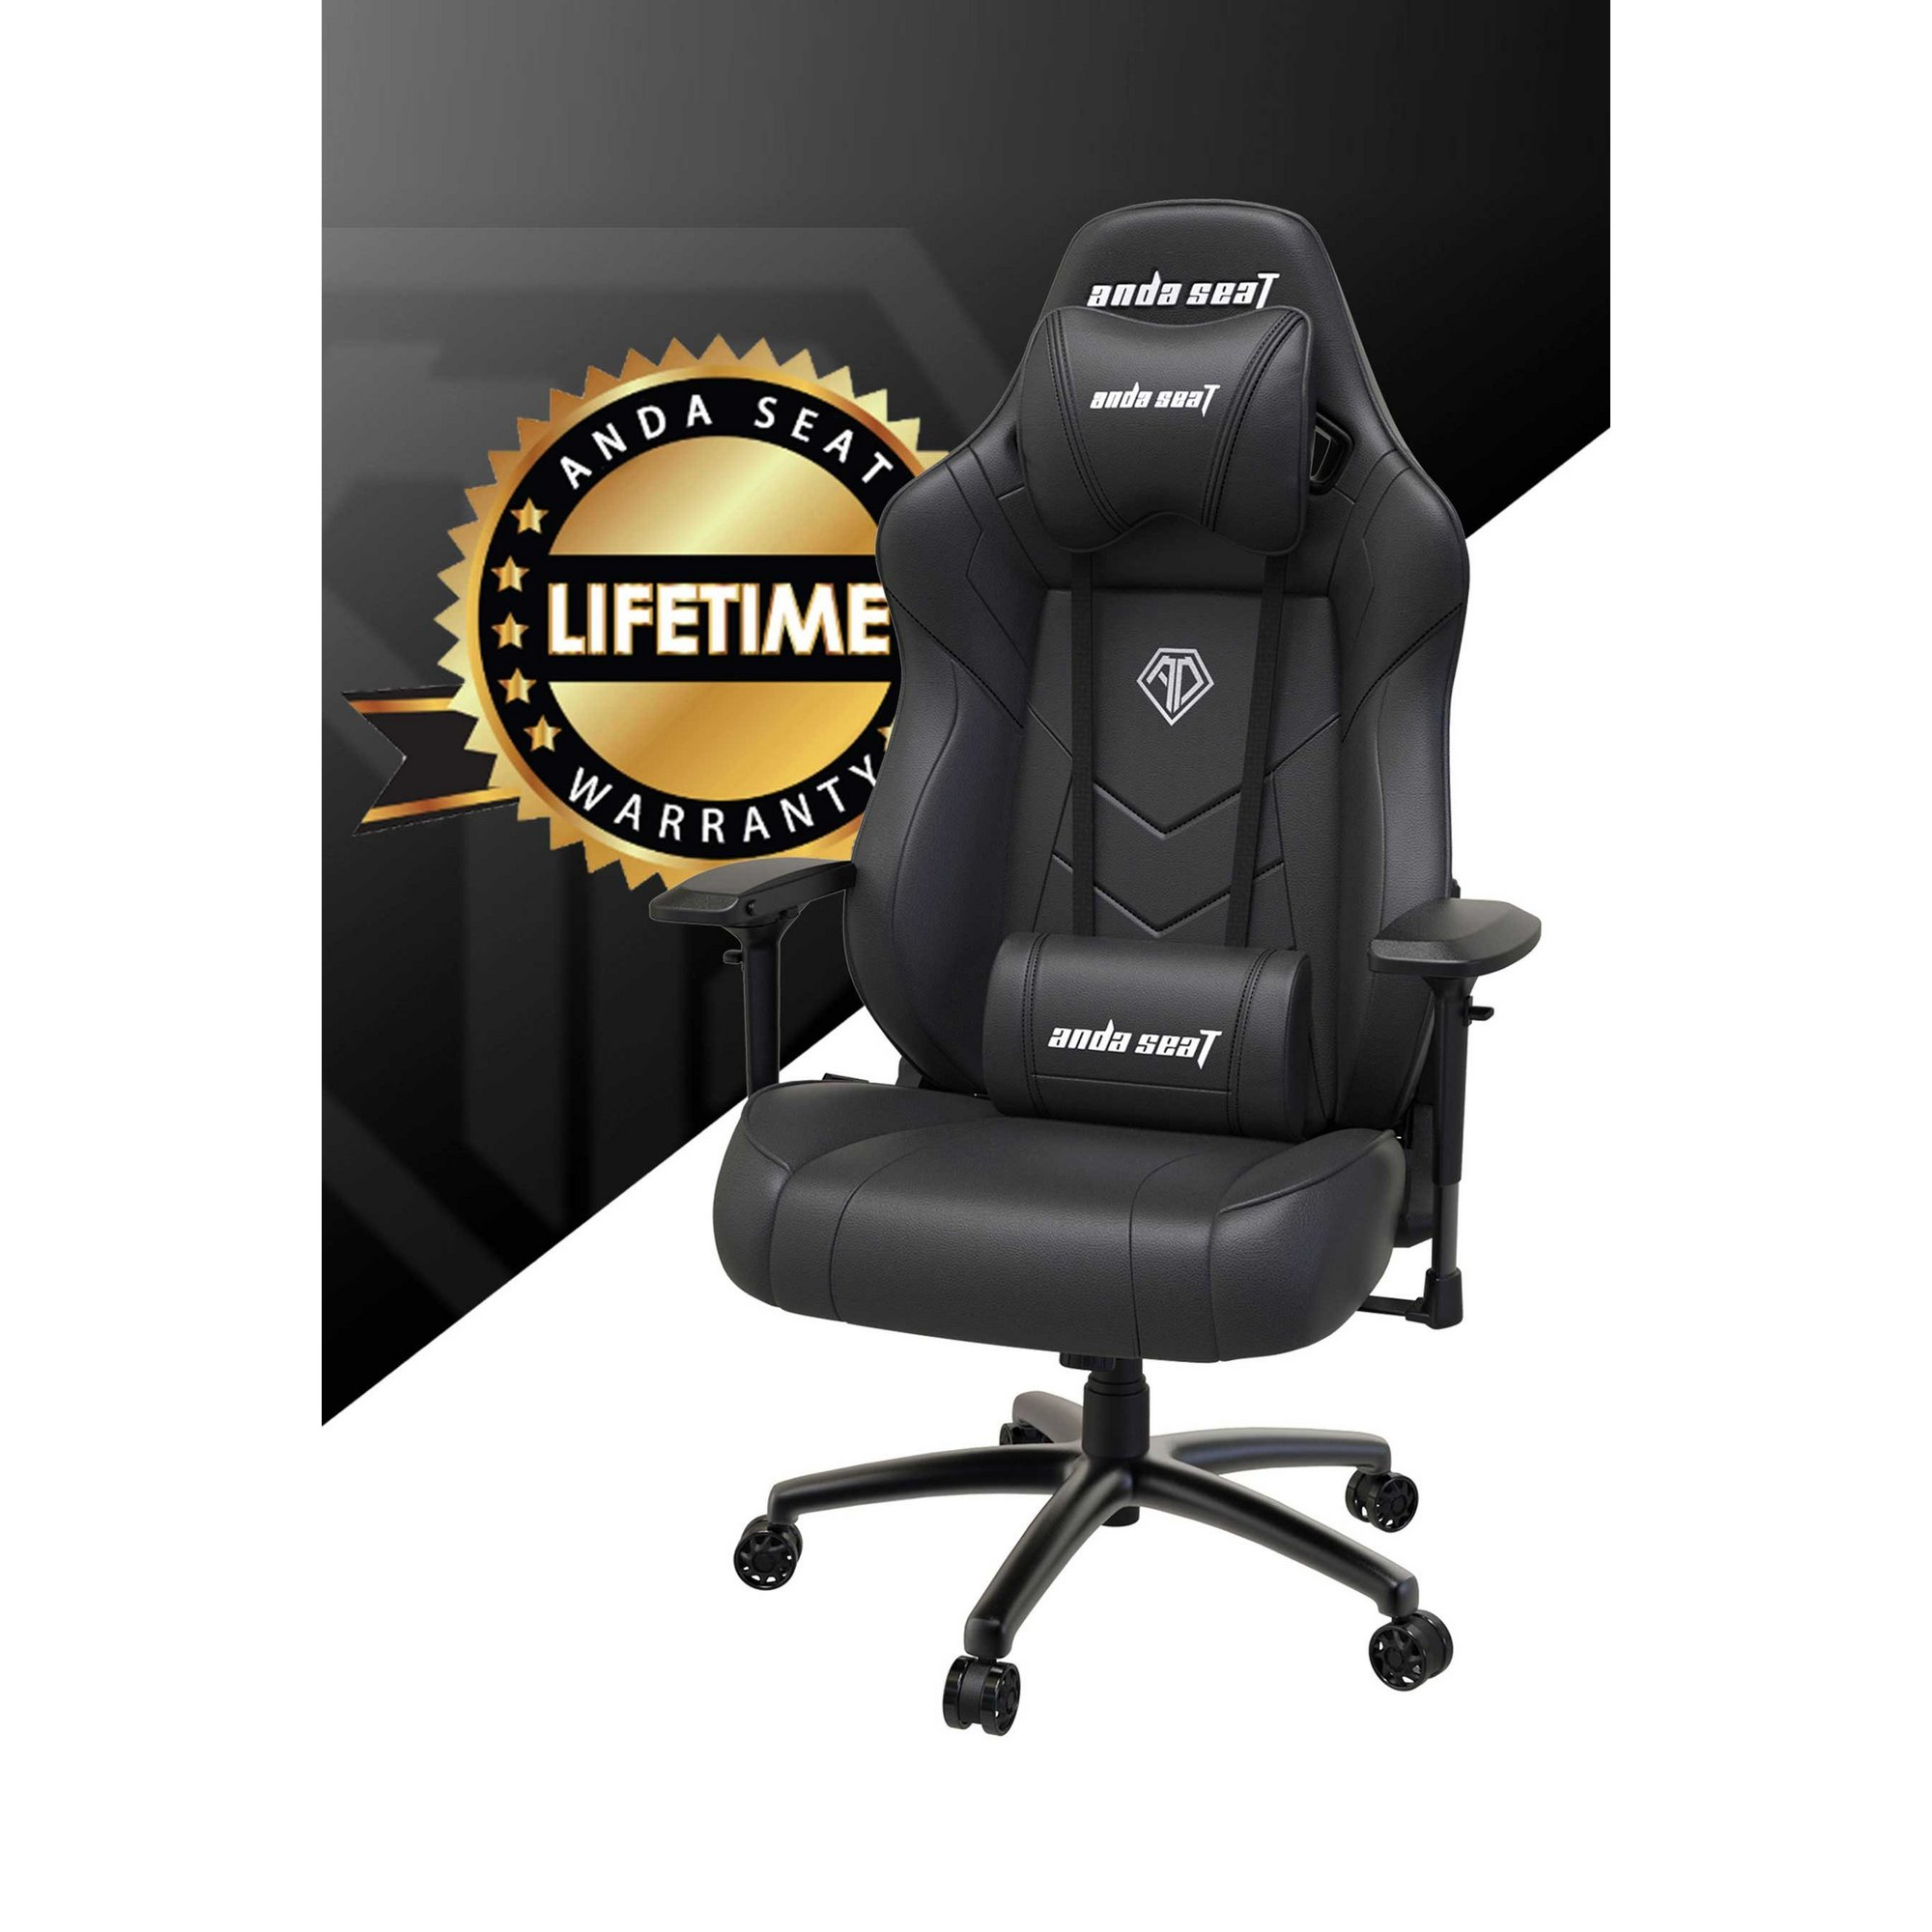 Image of anda seaT Dark Demon Premium Gaming Chair